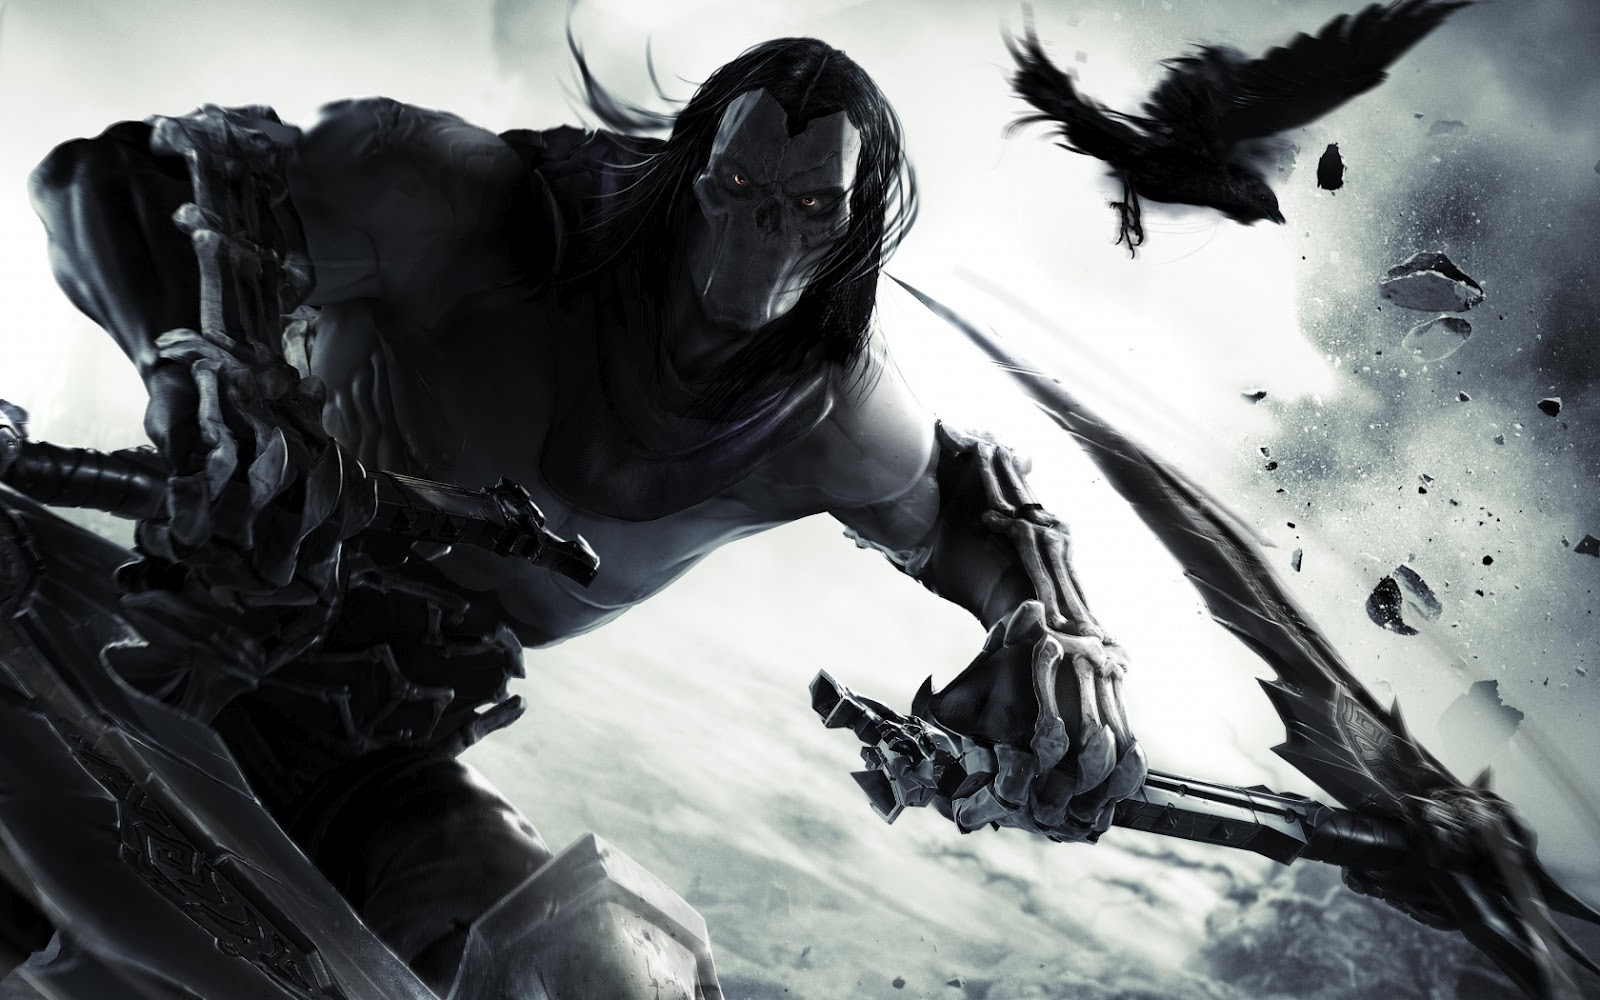 http://1.bp.blogspot.com/-T_uVYI43aNI/T46gAb-M9aI/AAAAAAAABYc/y3KYzel7Lp4/s1600/Darksiders_II_Death_and_Dust_3D_HD_Game_Wallpaper-gWb.jpg